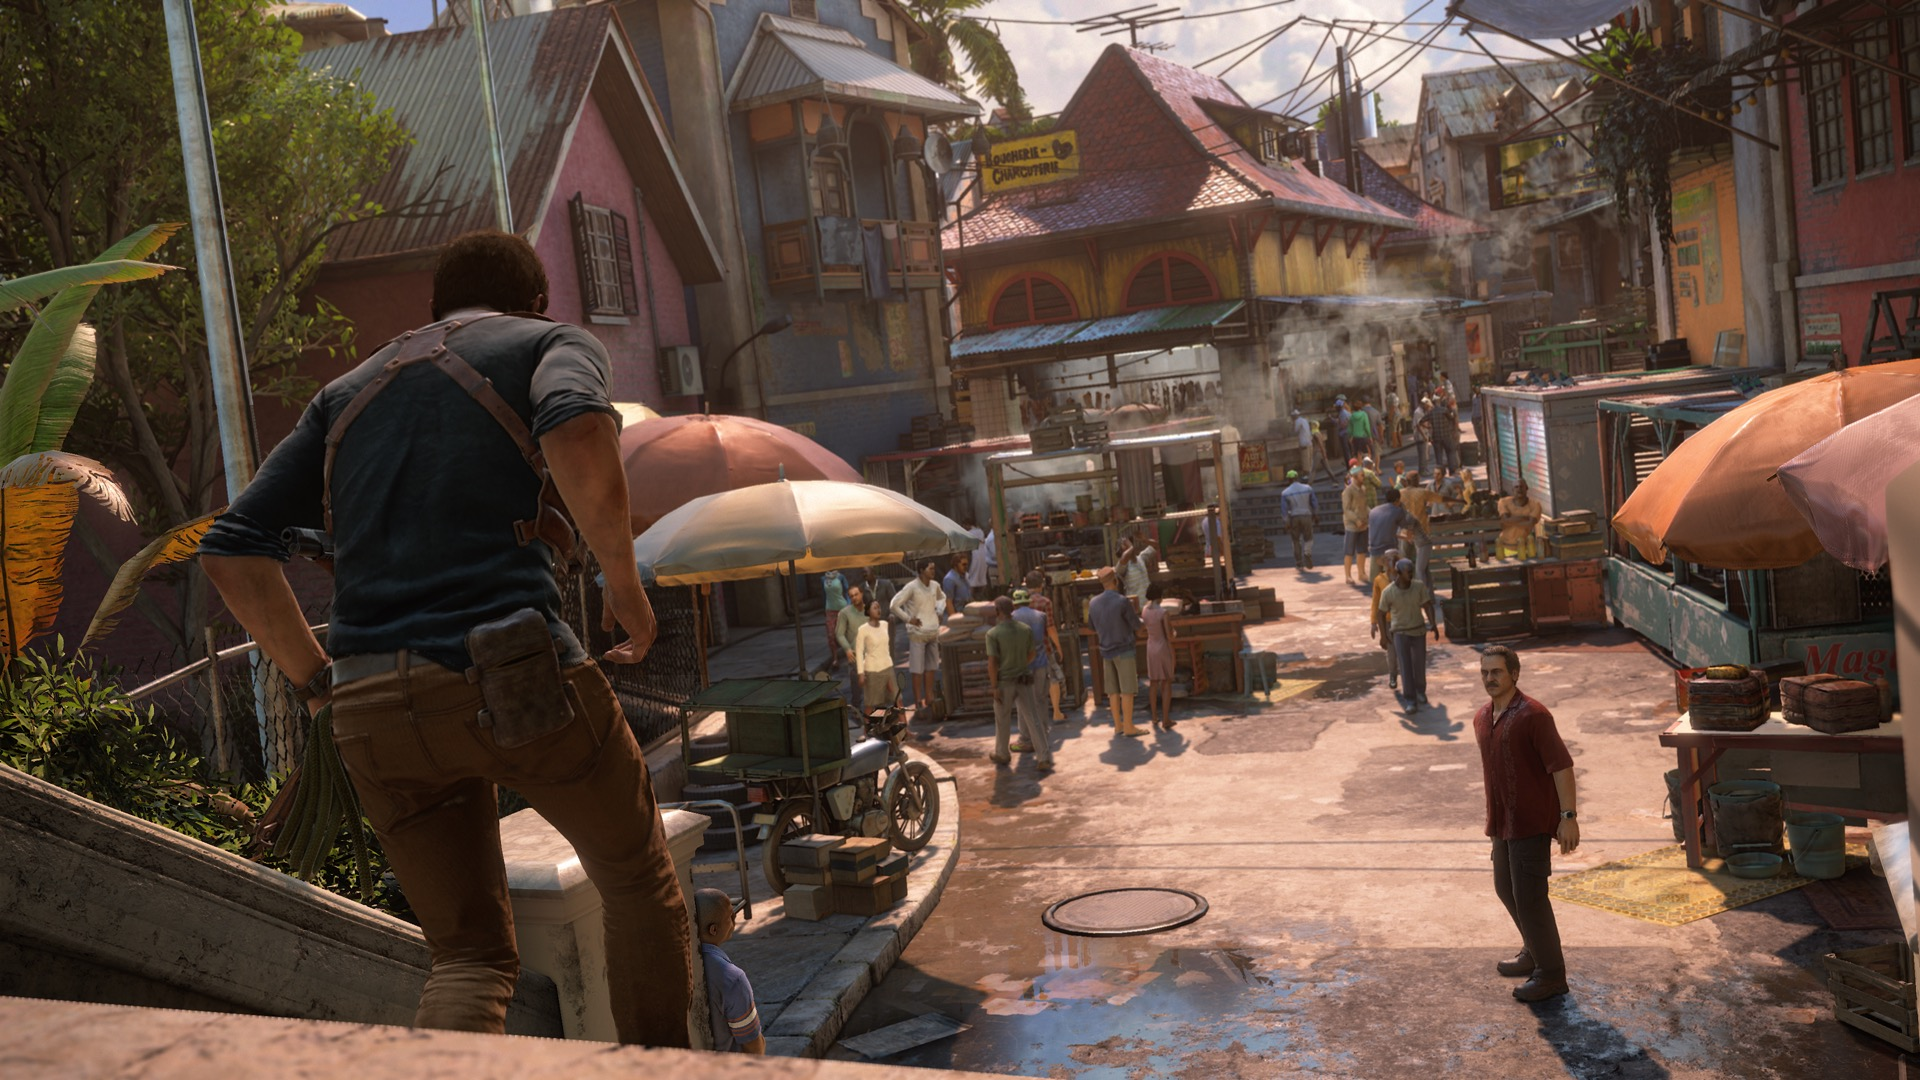 'The Last of Us' and 'Uncharted' movies are stuck in limbo